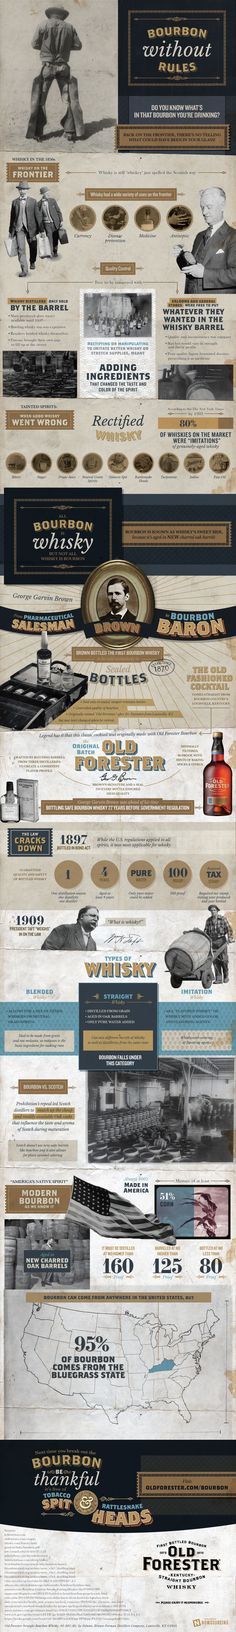 Old Forester #infographic #Food #Wine #Whisky #History